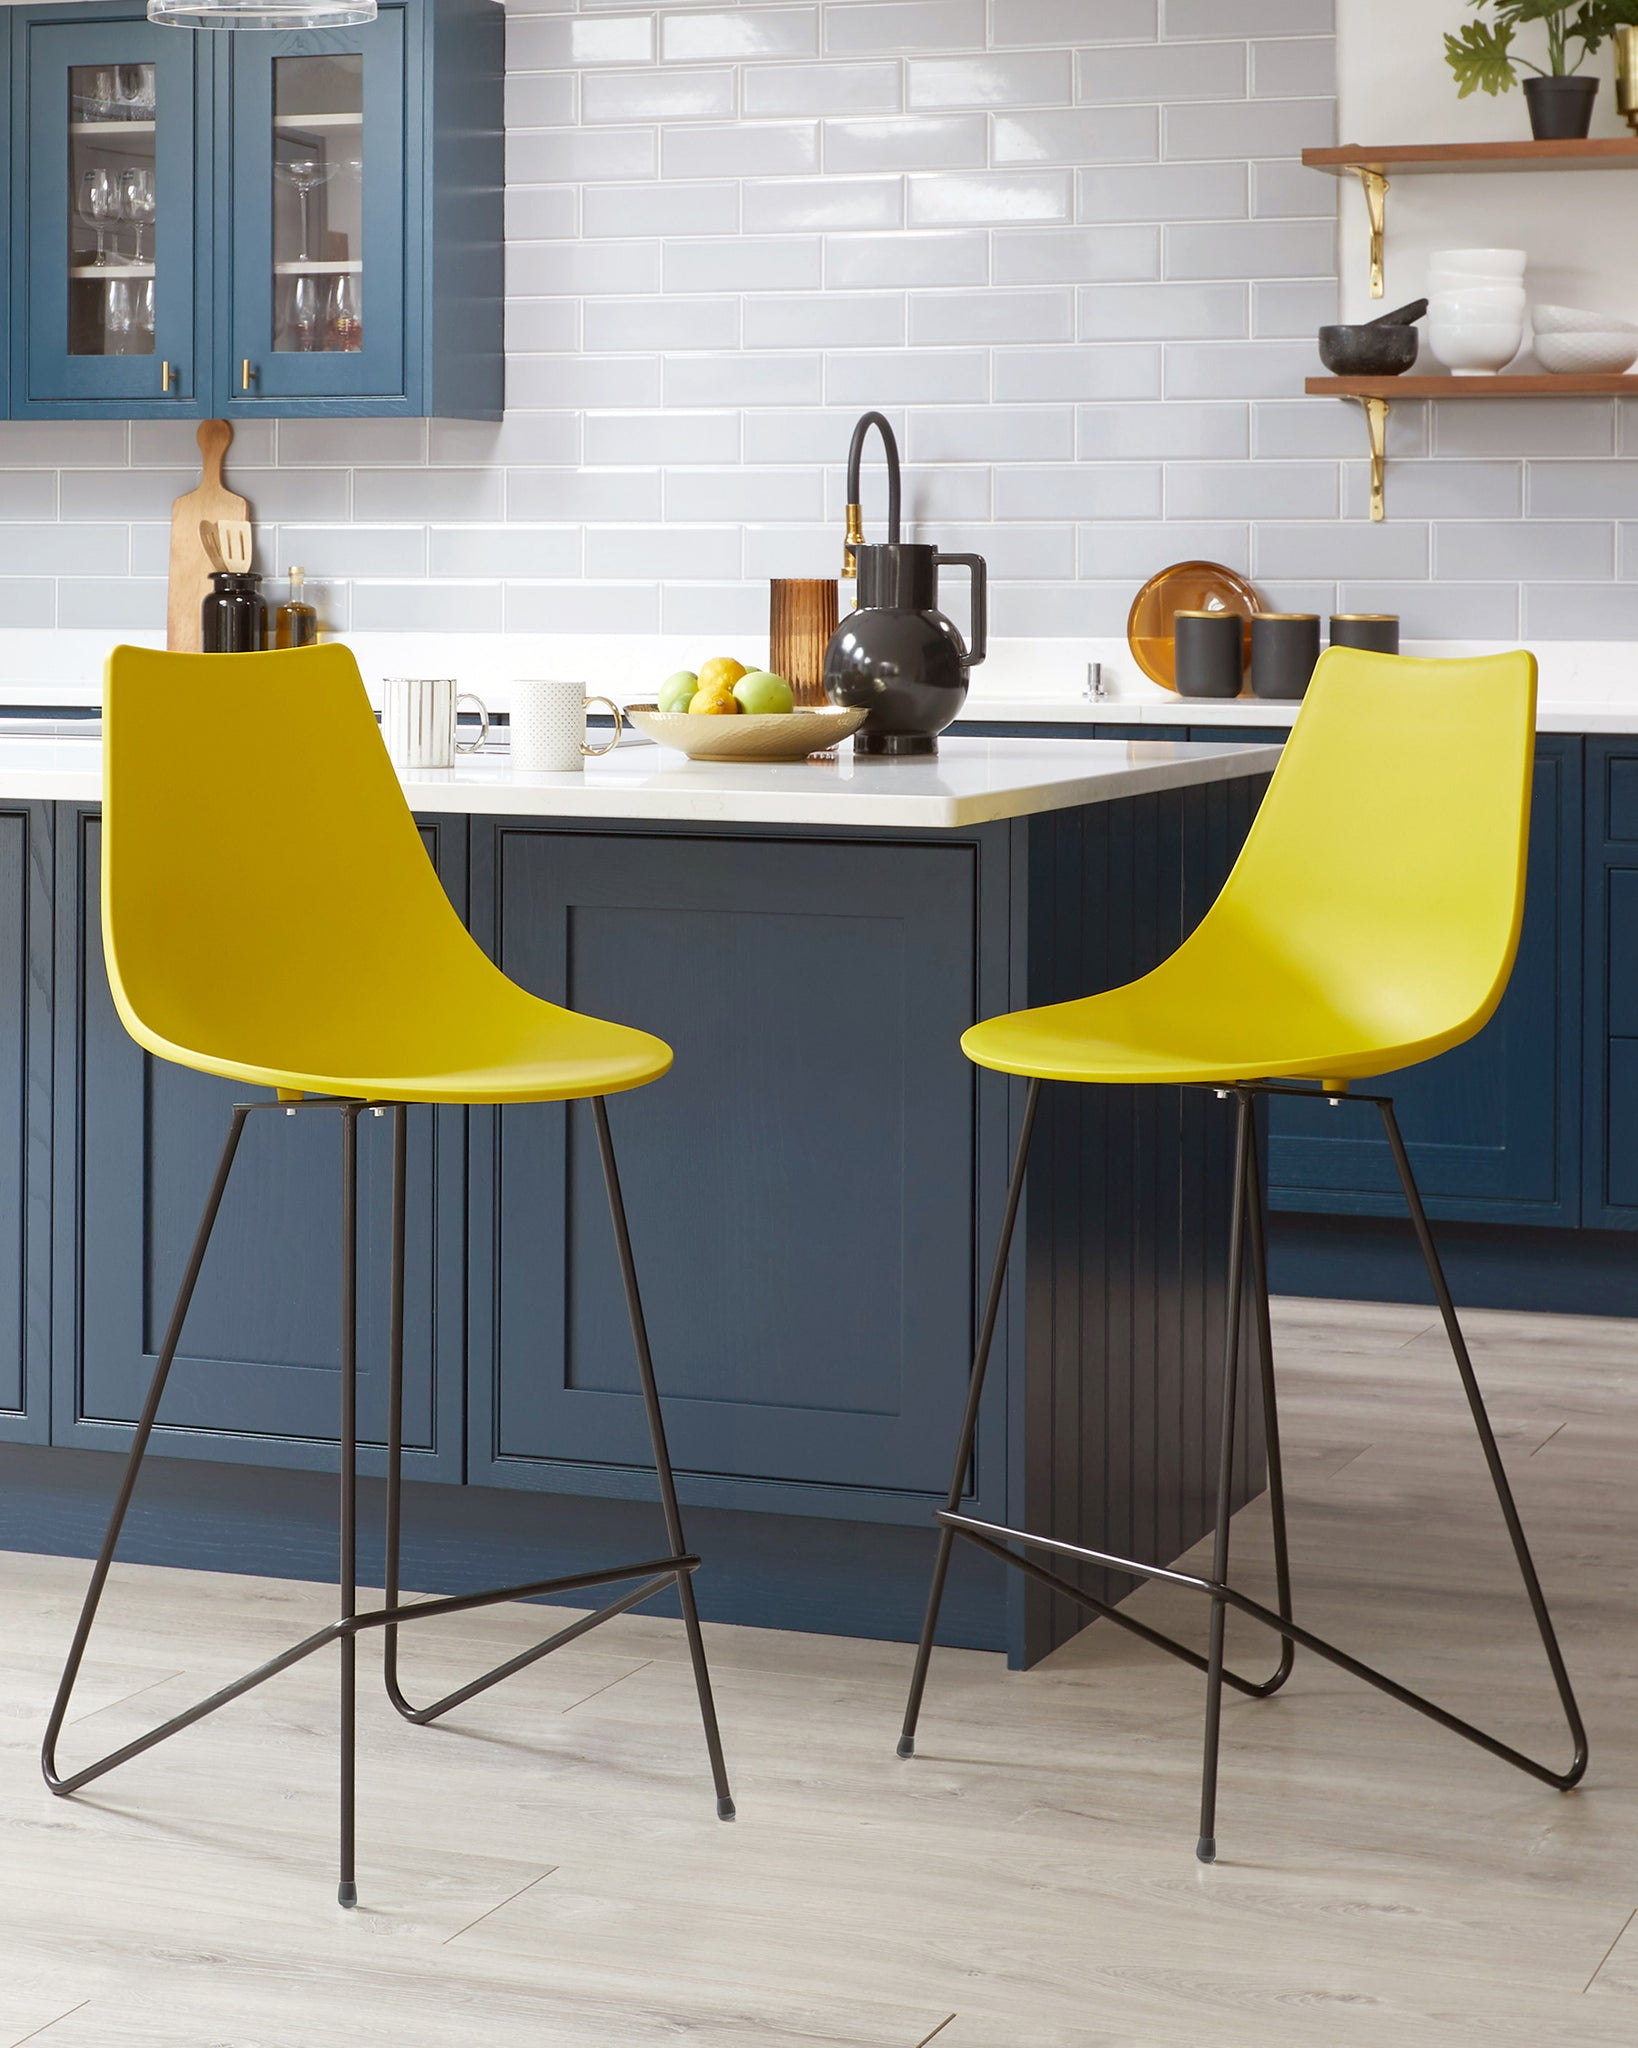 Sawyer Mustard Yellow Bar Stool - Set Of 2